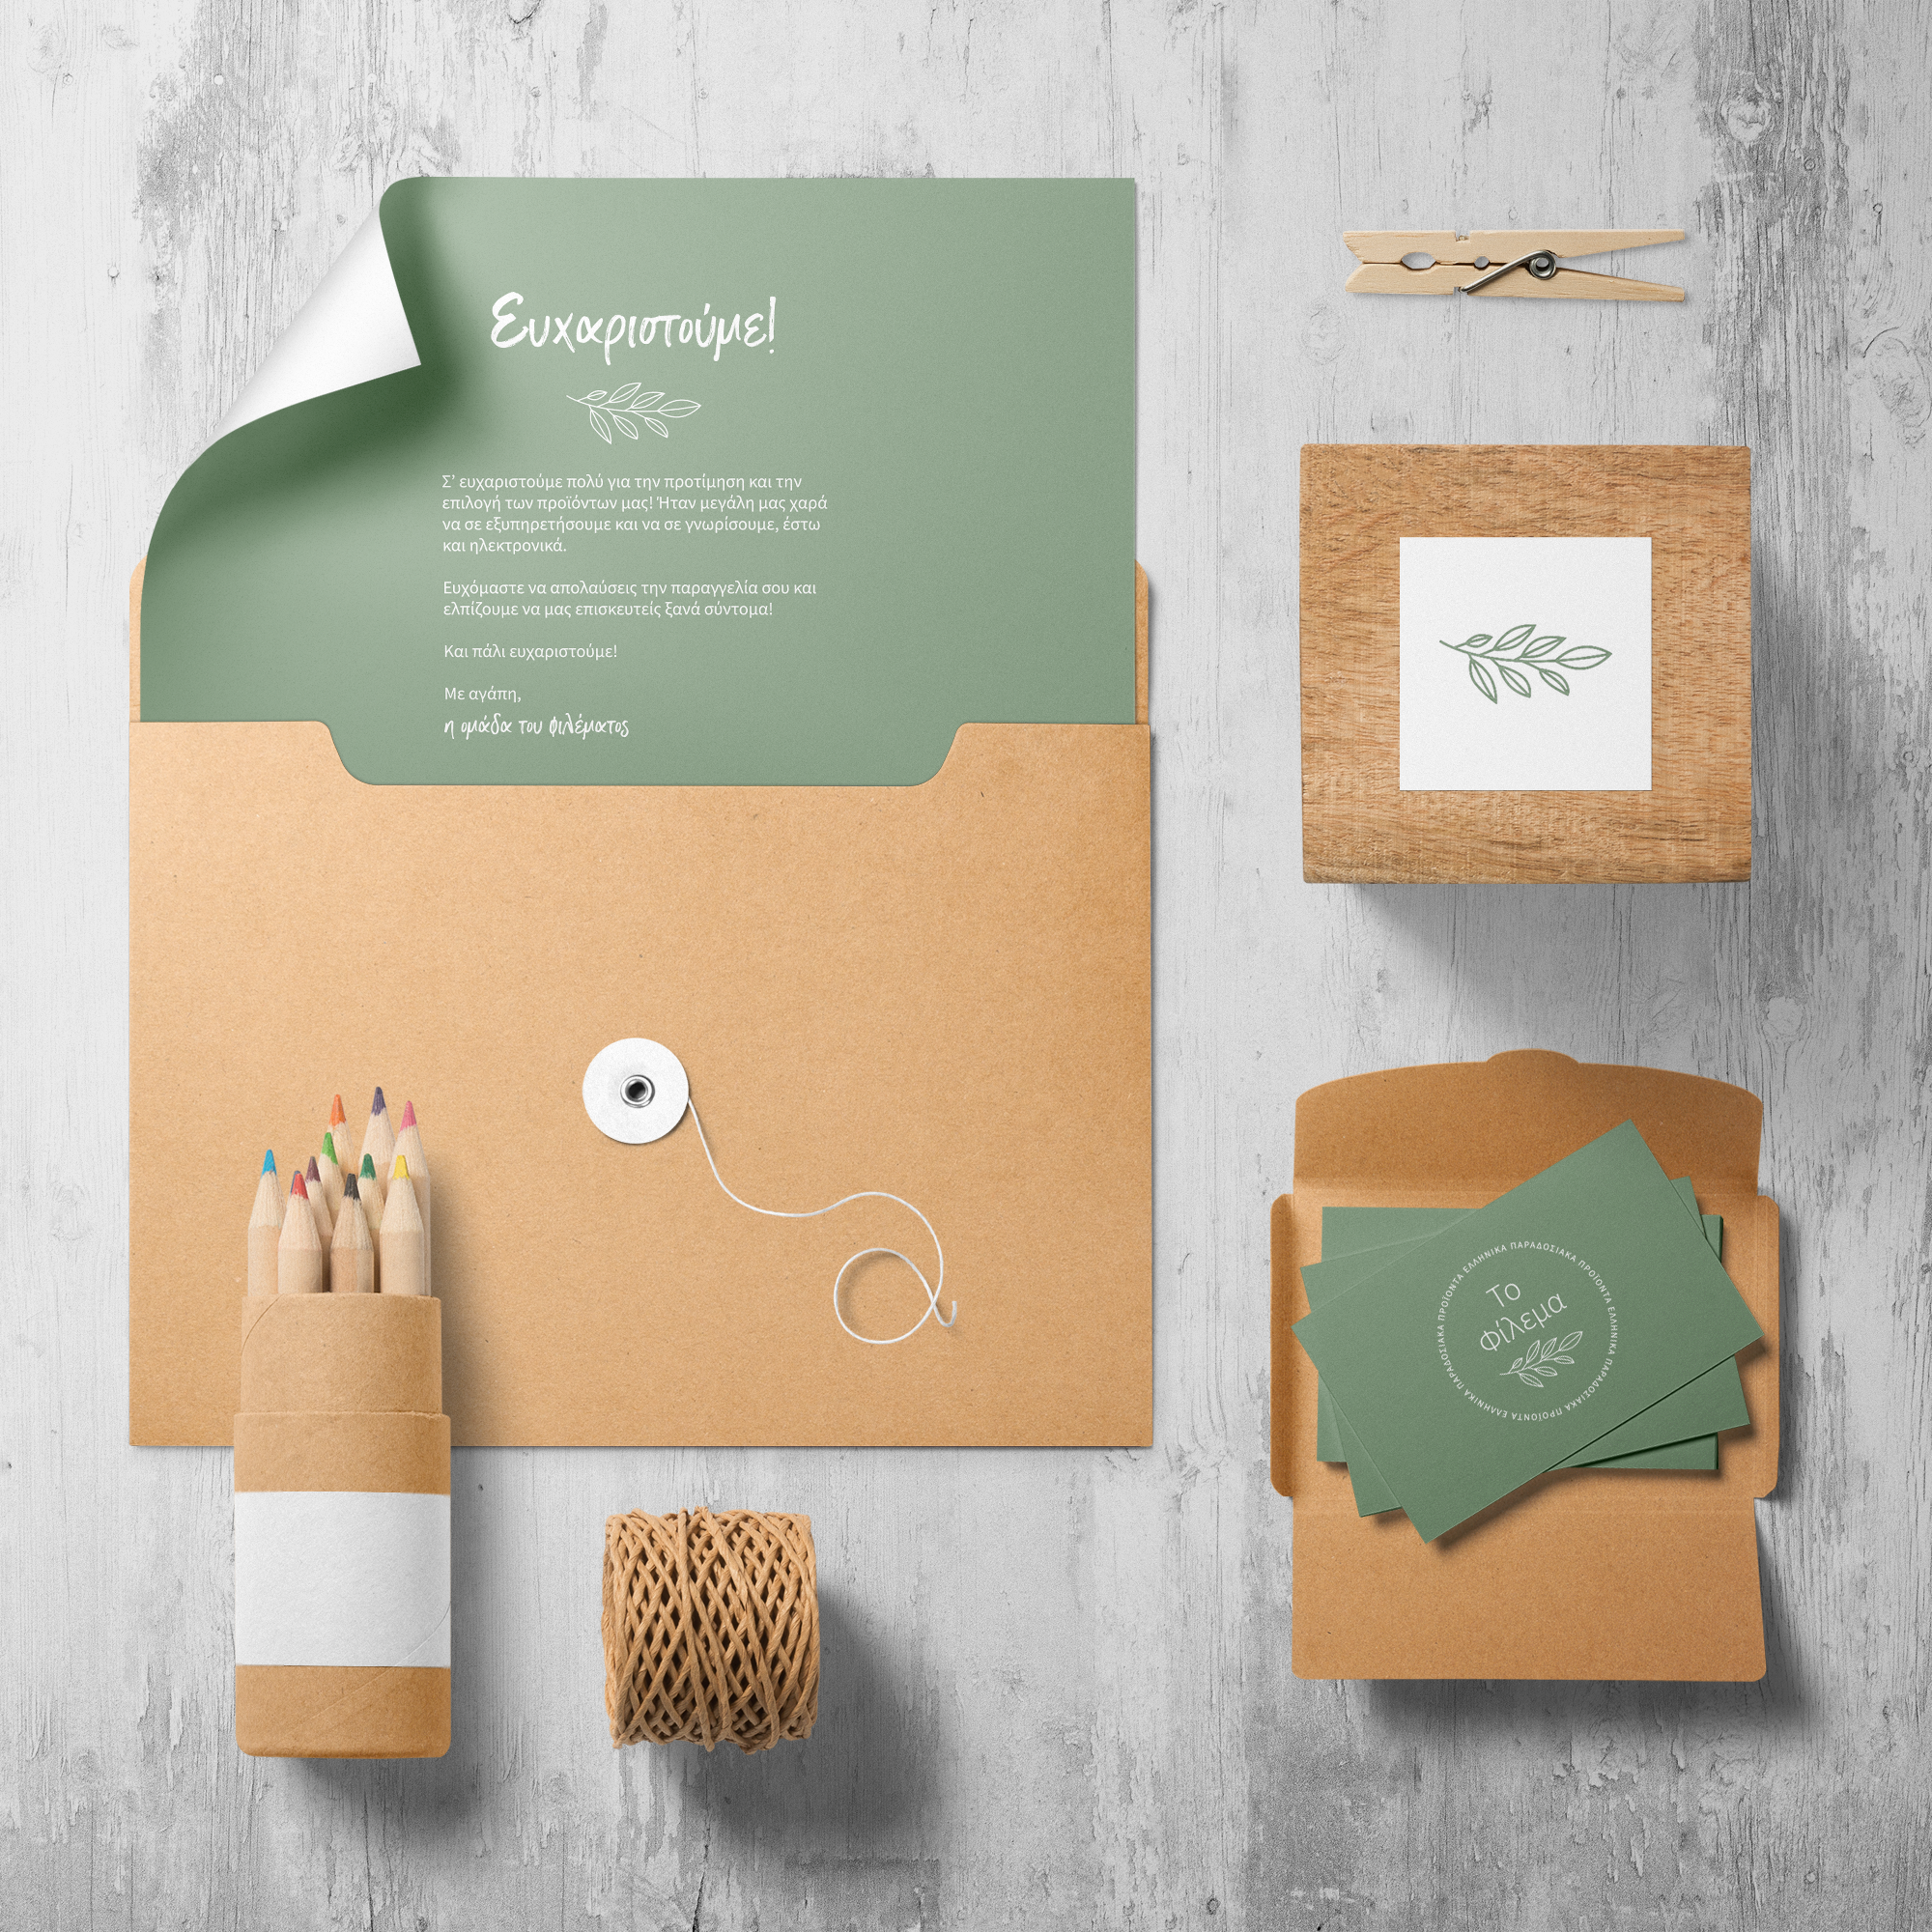 To Filema branding on business cards, A4 sheets and several stationery items